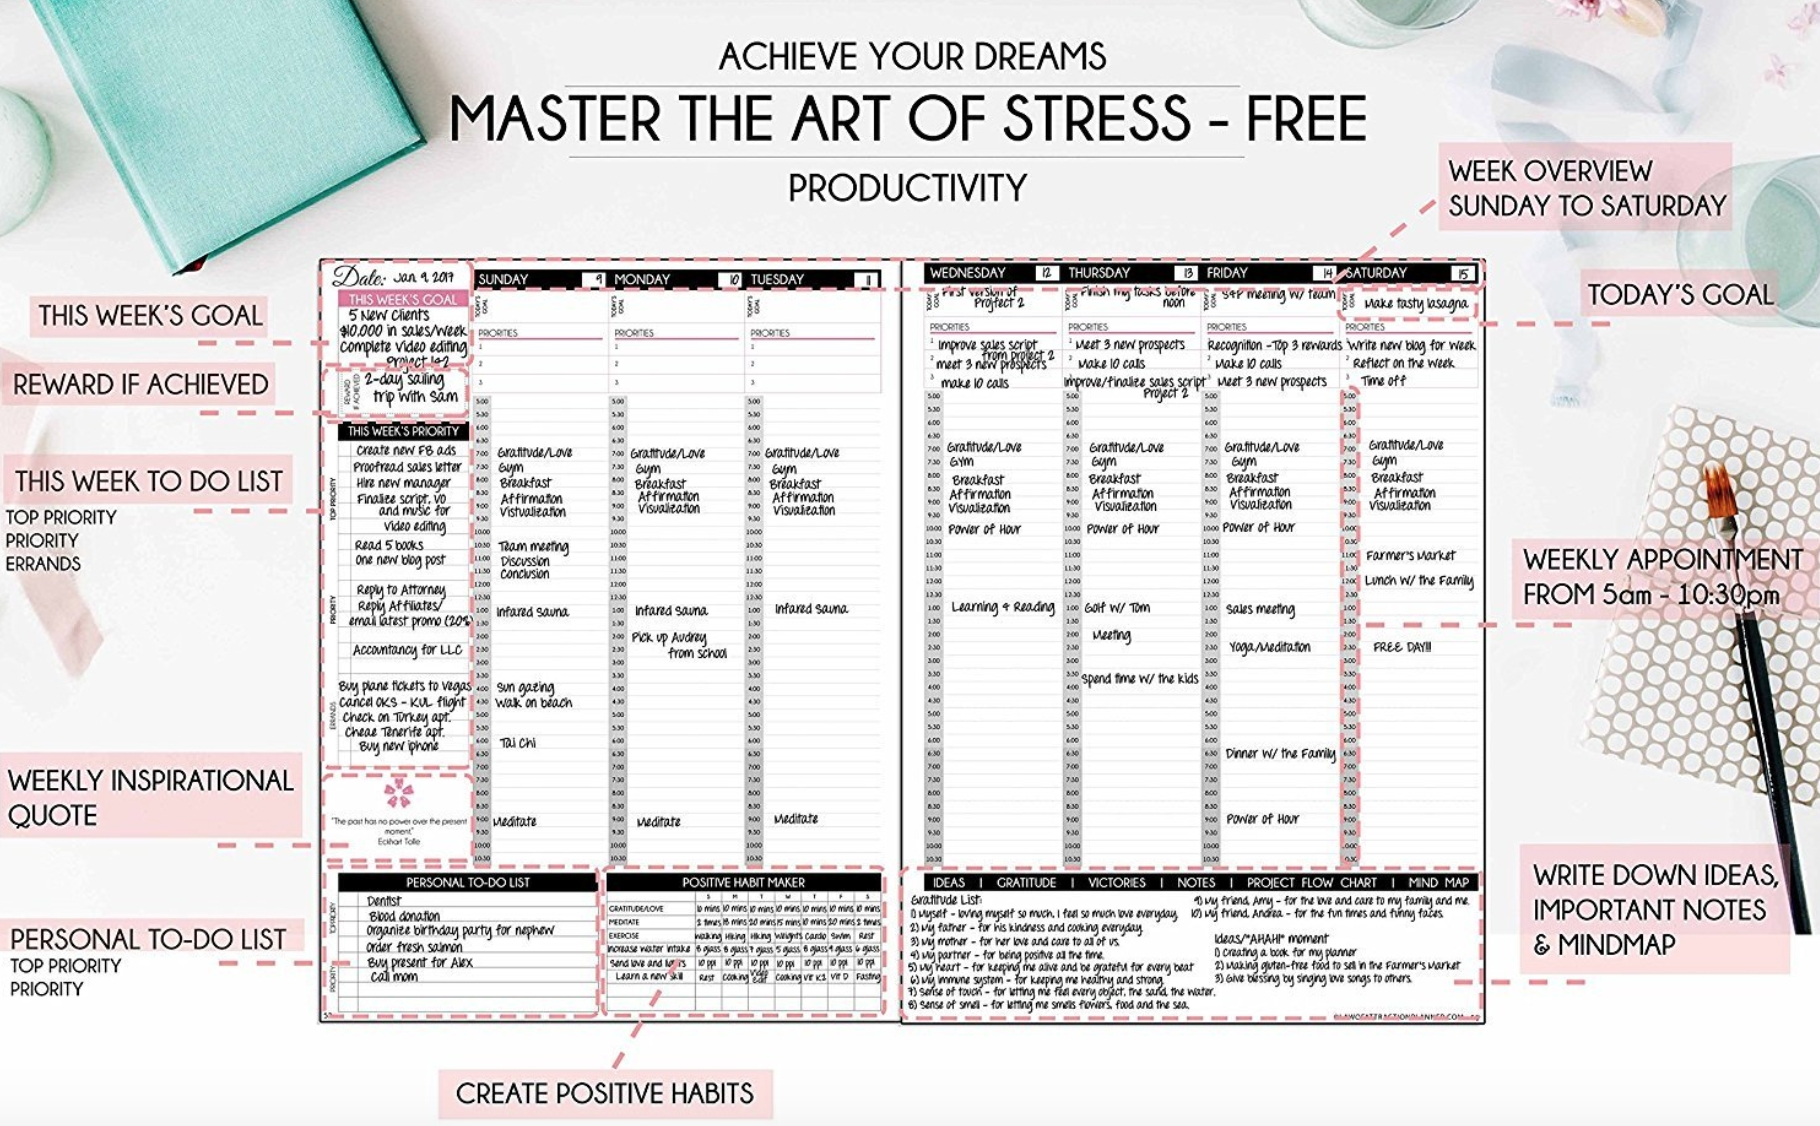 An Honest Review Of 8 Amazing Journals & Planners - Natalie Bacon inside Blank Weekly Calendar For Structured Recovery